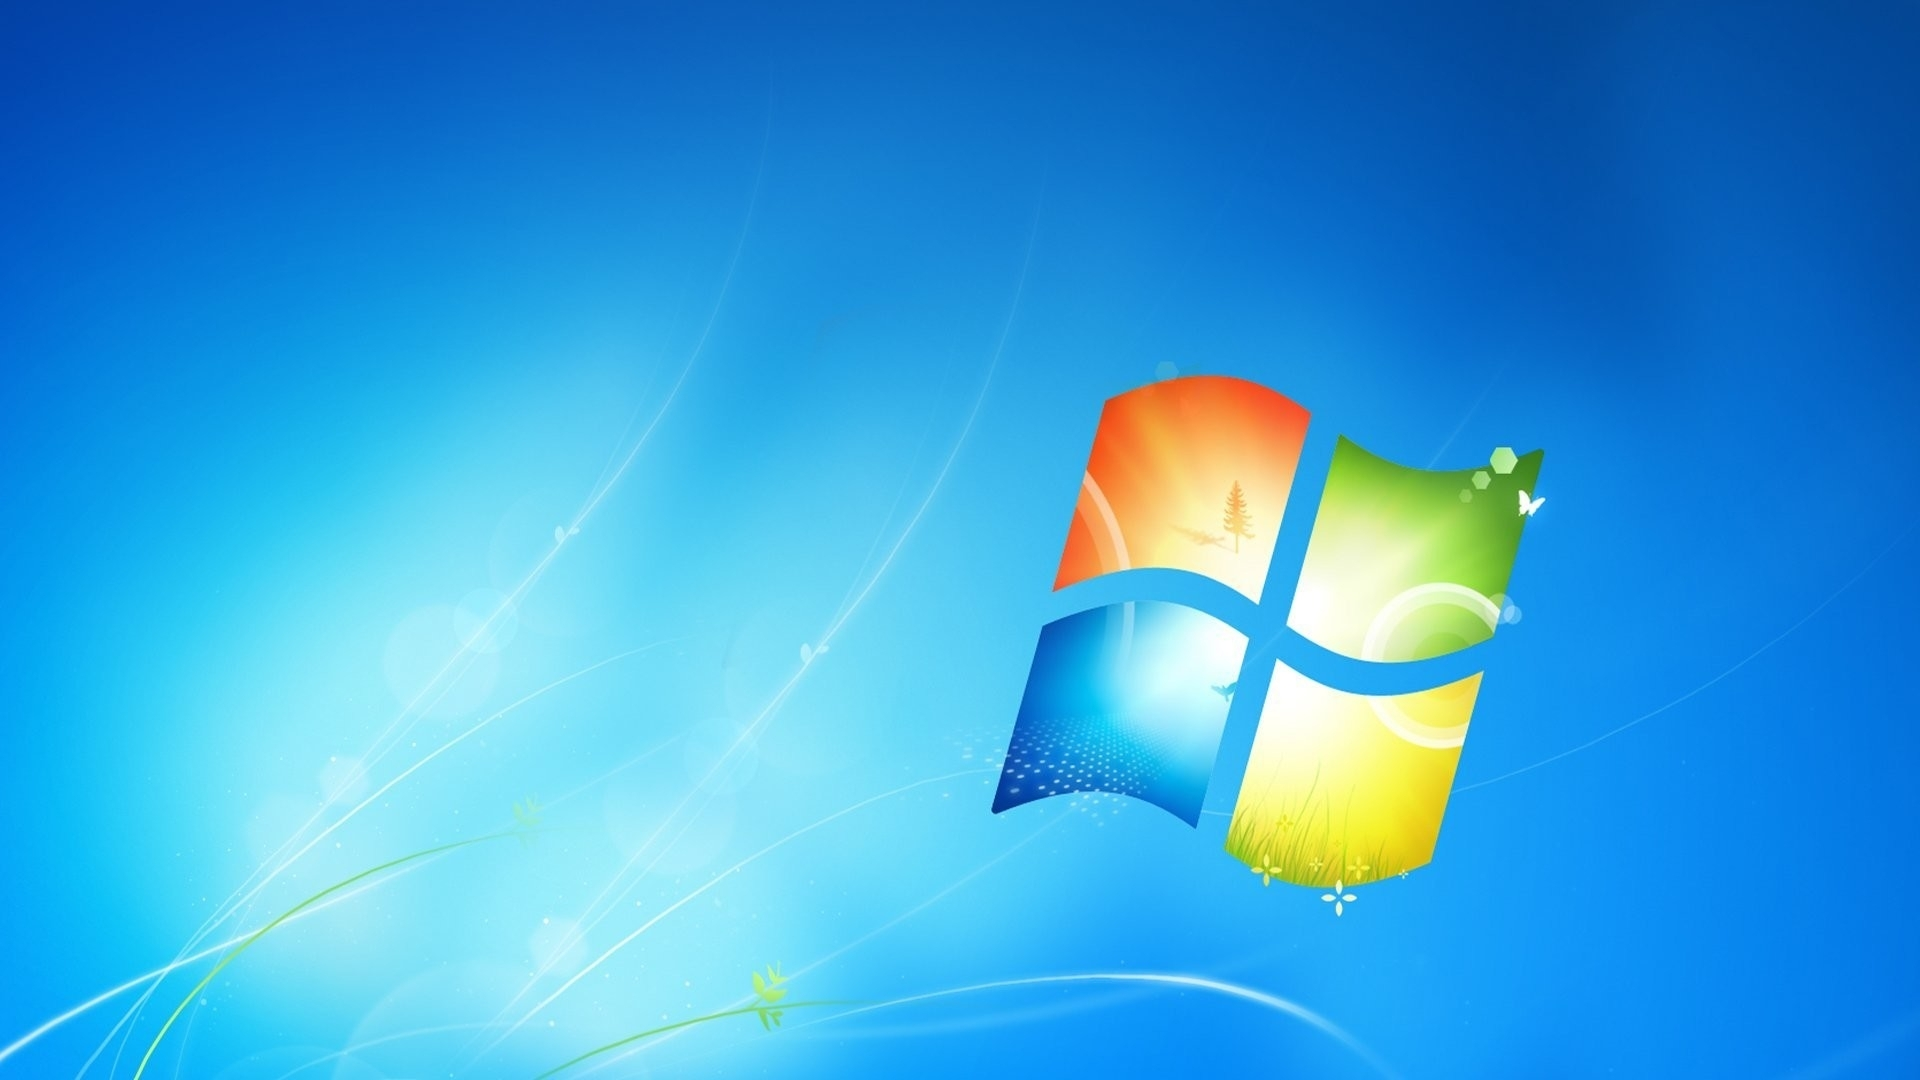 10 New Windows 7 Background 1920x1080 Full Hd 1920 1080 For Pc